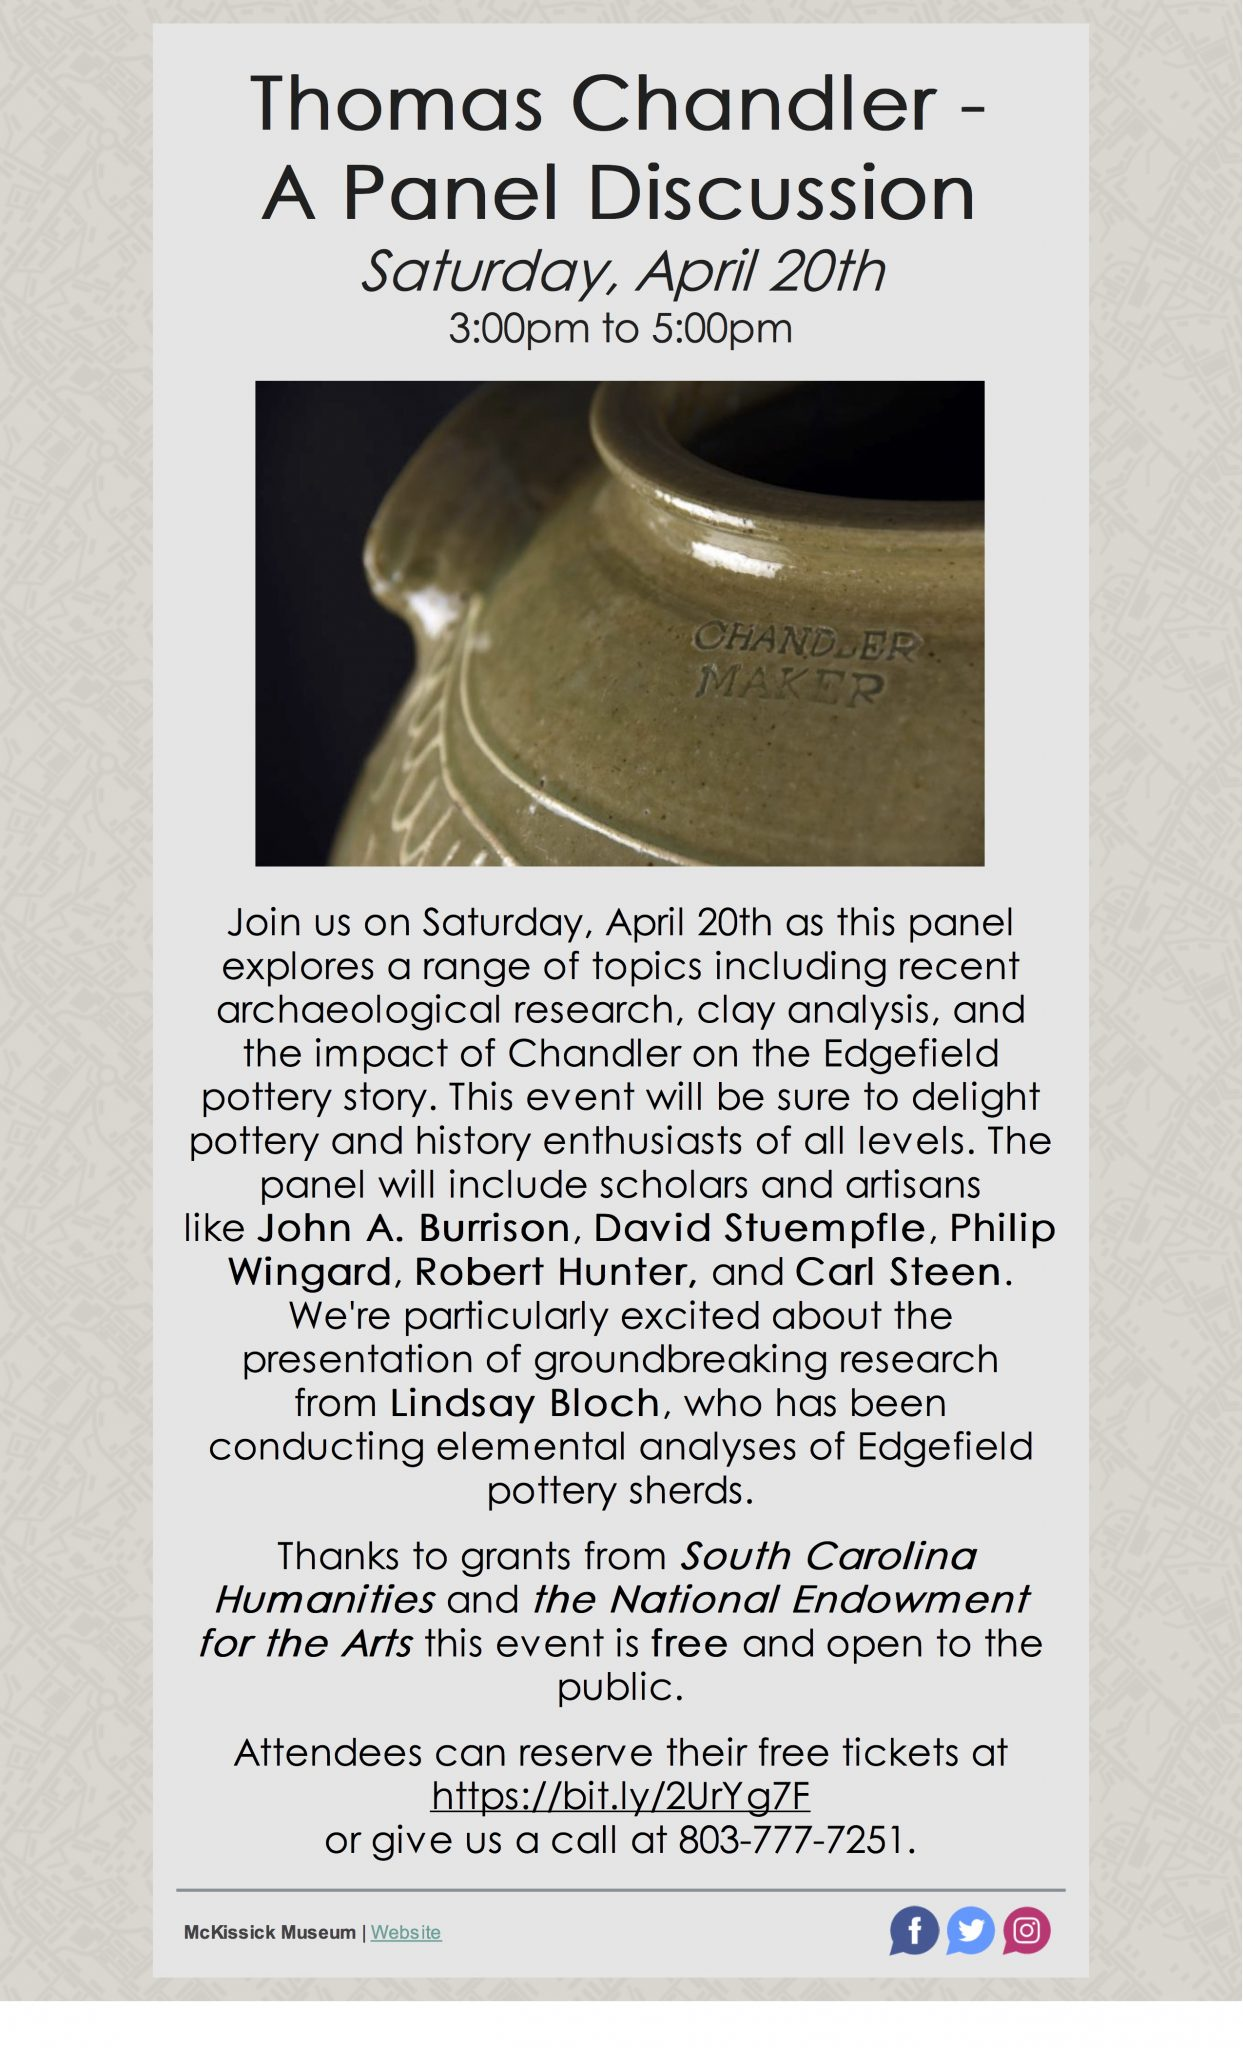 Flyer for event: Thomas Chandler - A Panel Discussion Saturday, April 20th 3:00pm to 5:00pm Join us on Saturday, April 20th as this panel explores a range of topics including recent archaeological research, clay analysis, and the impact of Chandler on the Edgefield pottery story. This event will be sure to delight pottery and history enthusiasts of all levels. The panel will include scholars and artisans like John A. Burrison, David Stuempfle, Philip Wingard, Robert Hunter, and Carl Steen. We're particularly excited about the presentation of groundbreaking research from Lindsay Bloch, who has been conducting elemental analyses of Edgefield pottery sherds. Thanks to grants from South Carolina Humanities and the National Endowment for the Arts this event is free and open to the public. Attendees can reserve their free tickets at https://bit.ly/2UrYg7F or give us a call at 803-777-7251.